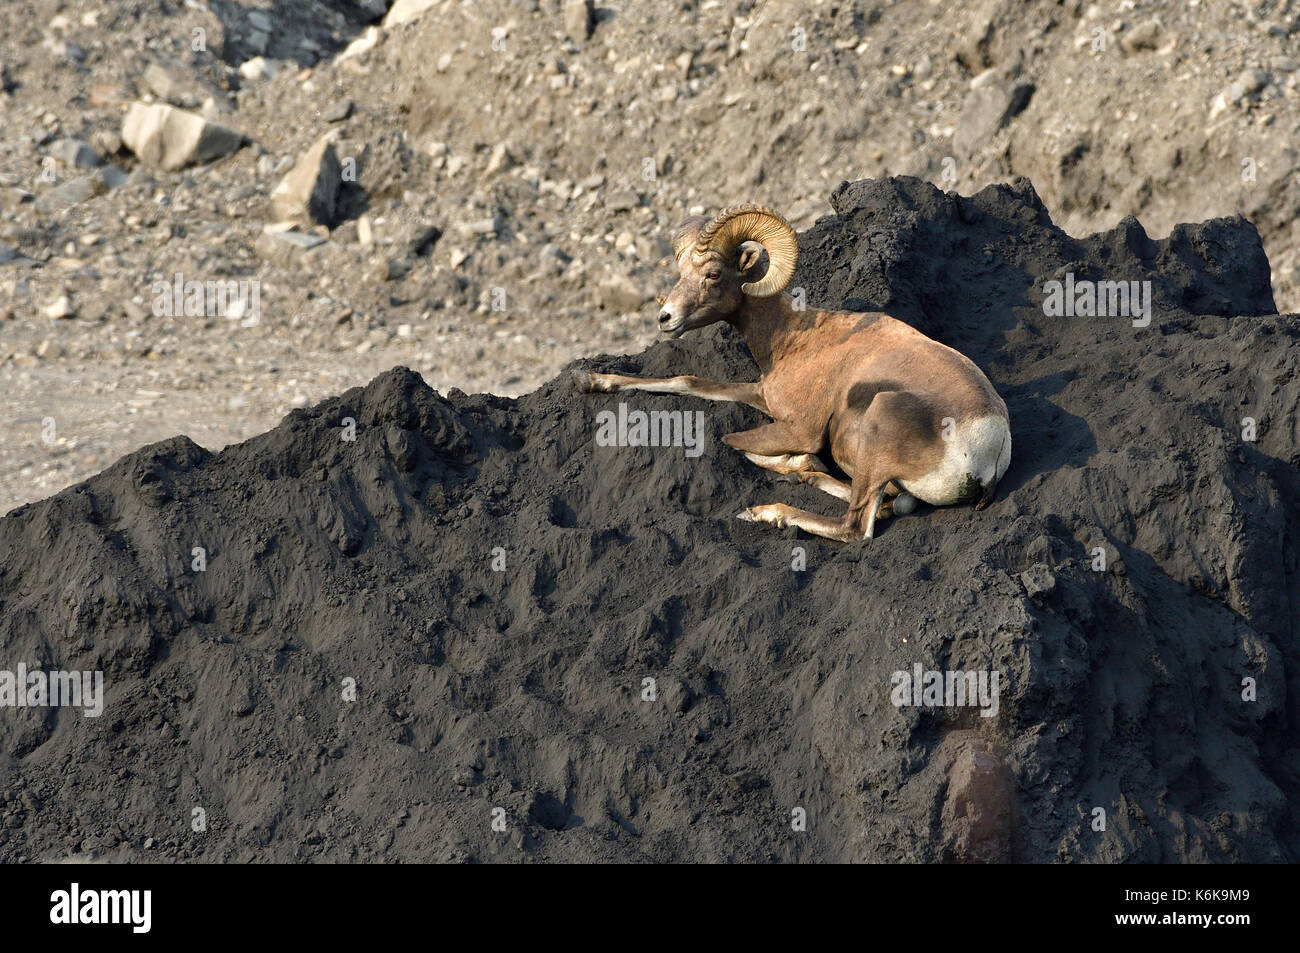 A wild Bighorn Sheep 'Ovis canadensis';  laying on top of a pile of coal at the Luscar mine near Cadomin Alberta Canada - Stock Image